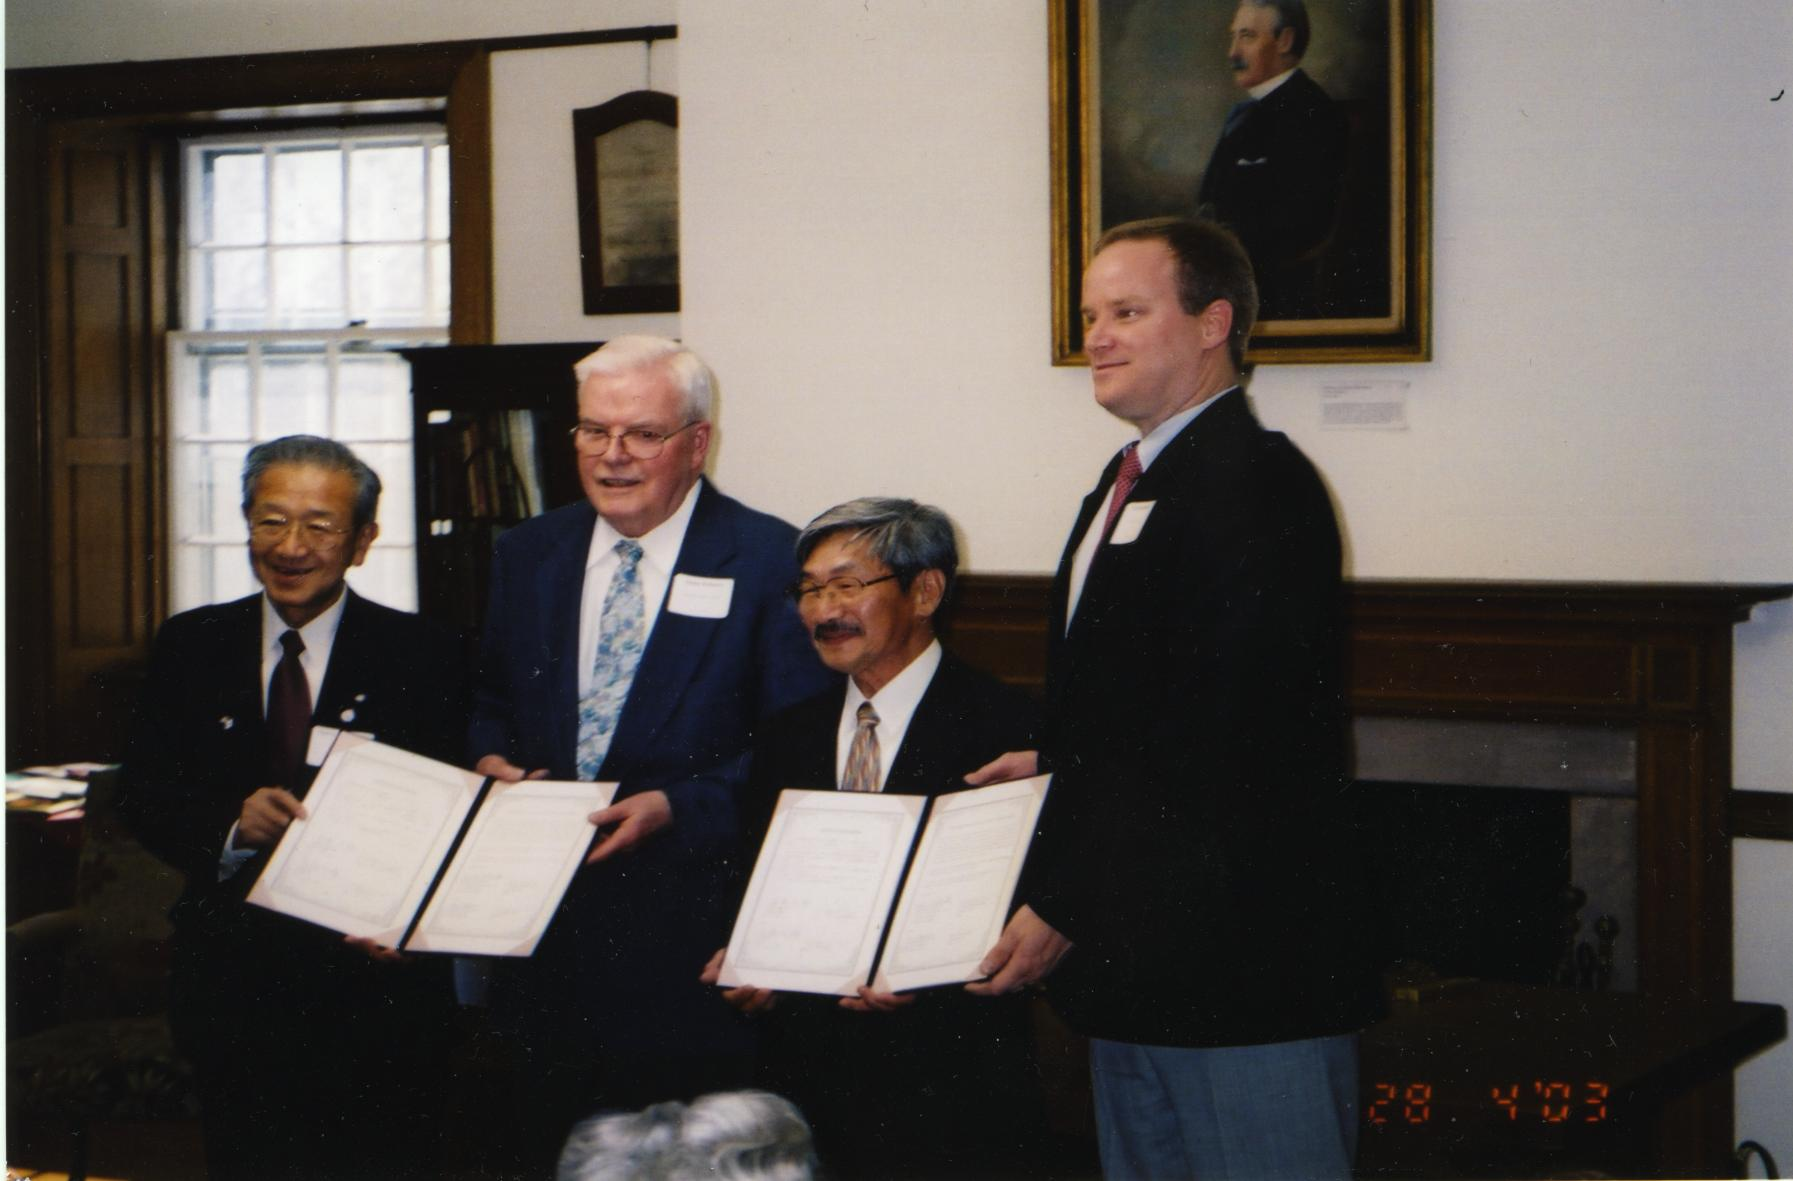 Kanegasaki Sister City Agreement Signing, 2003